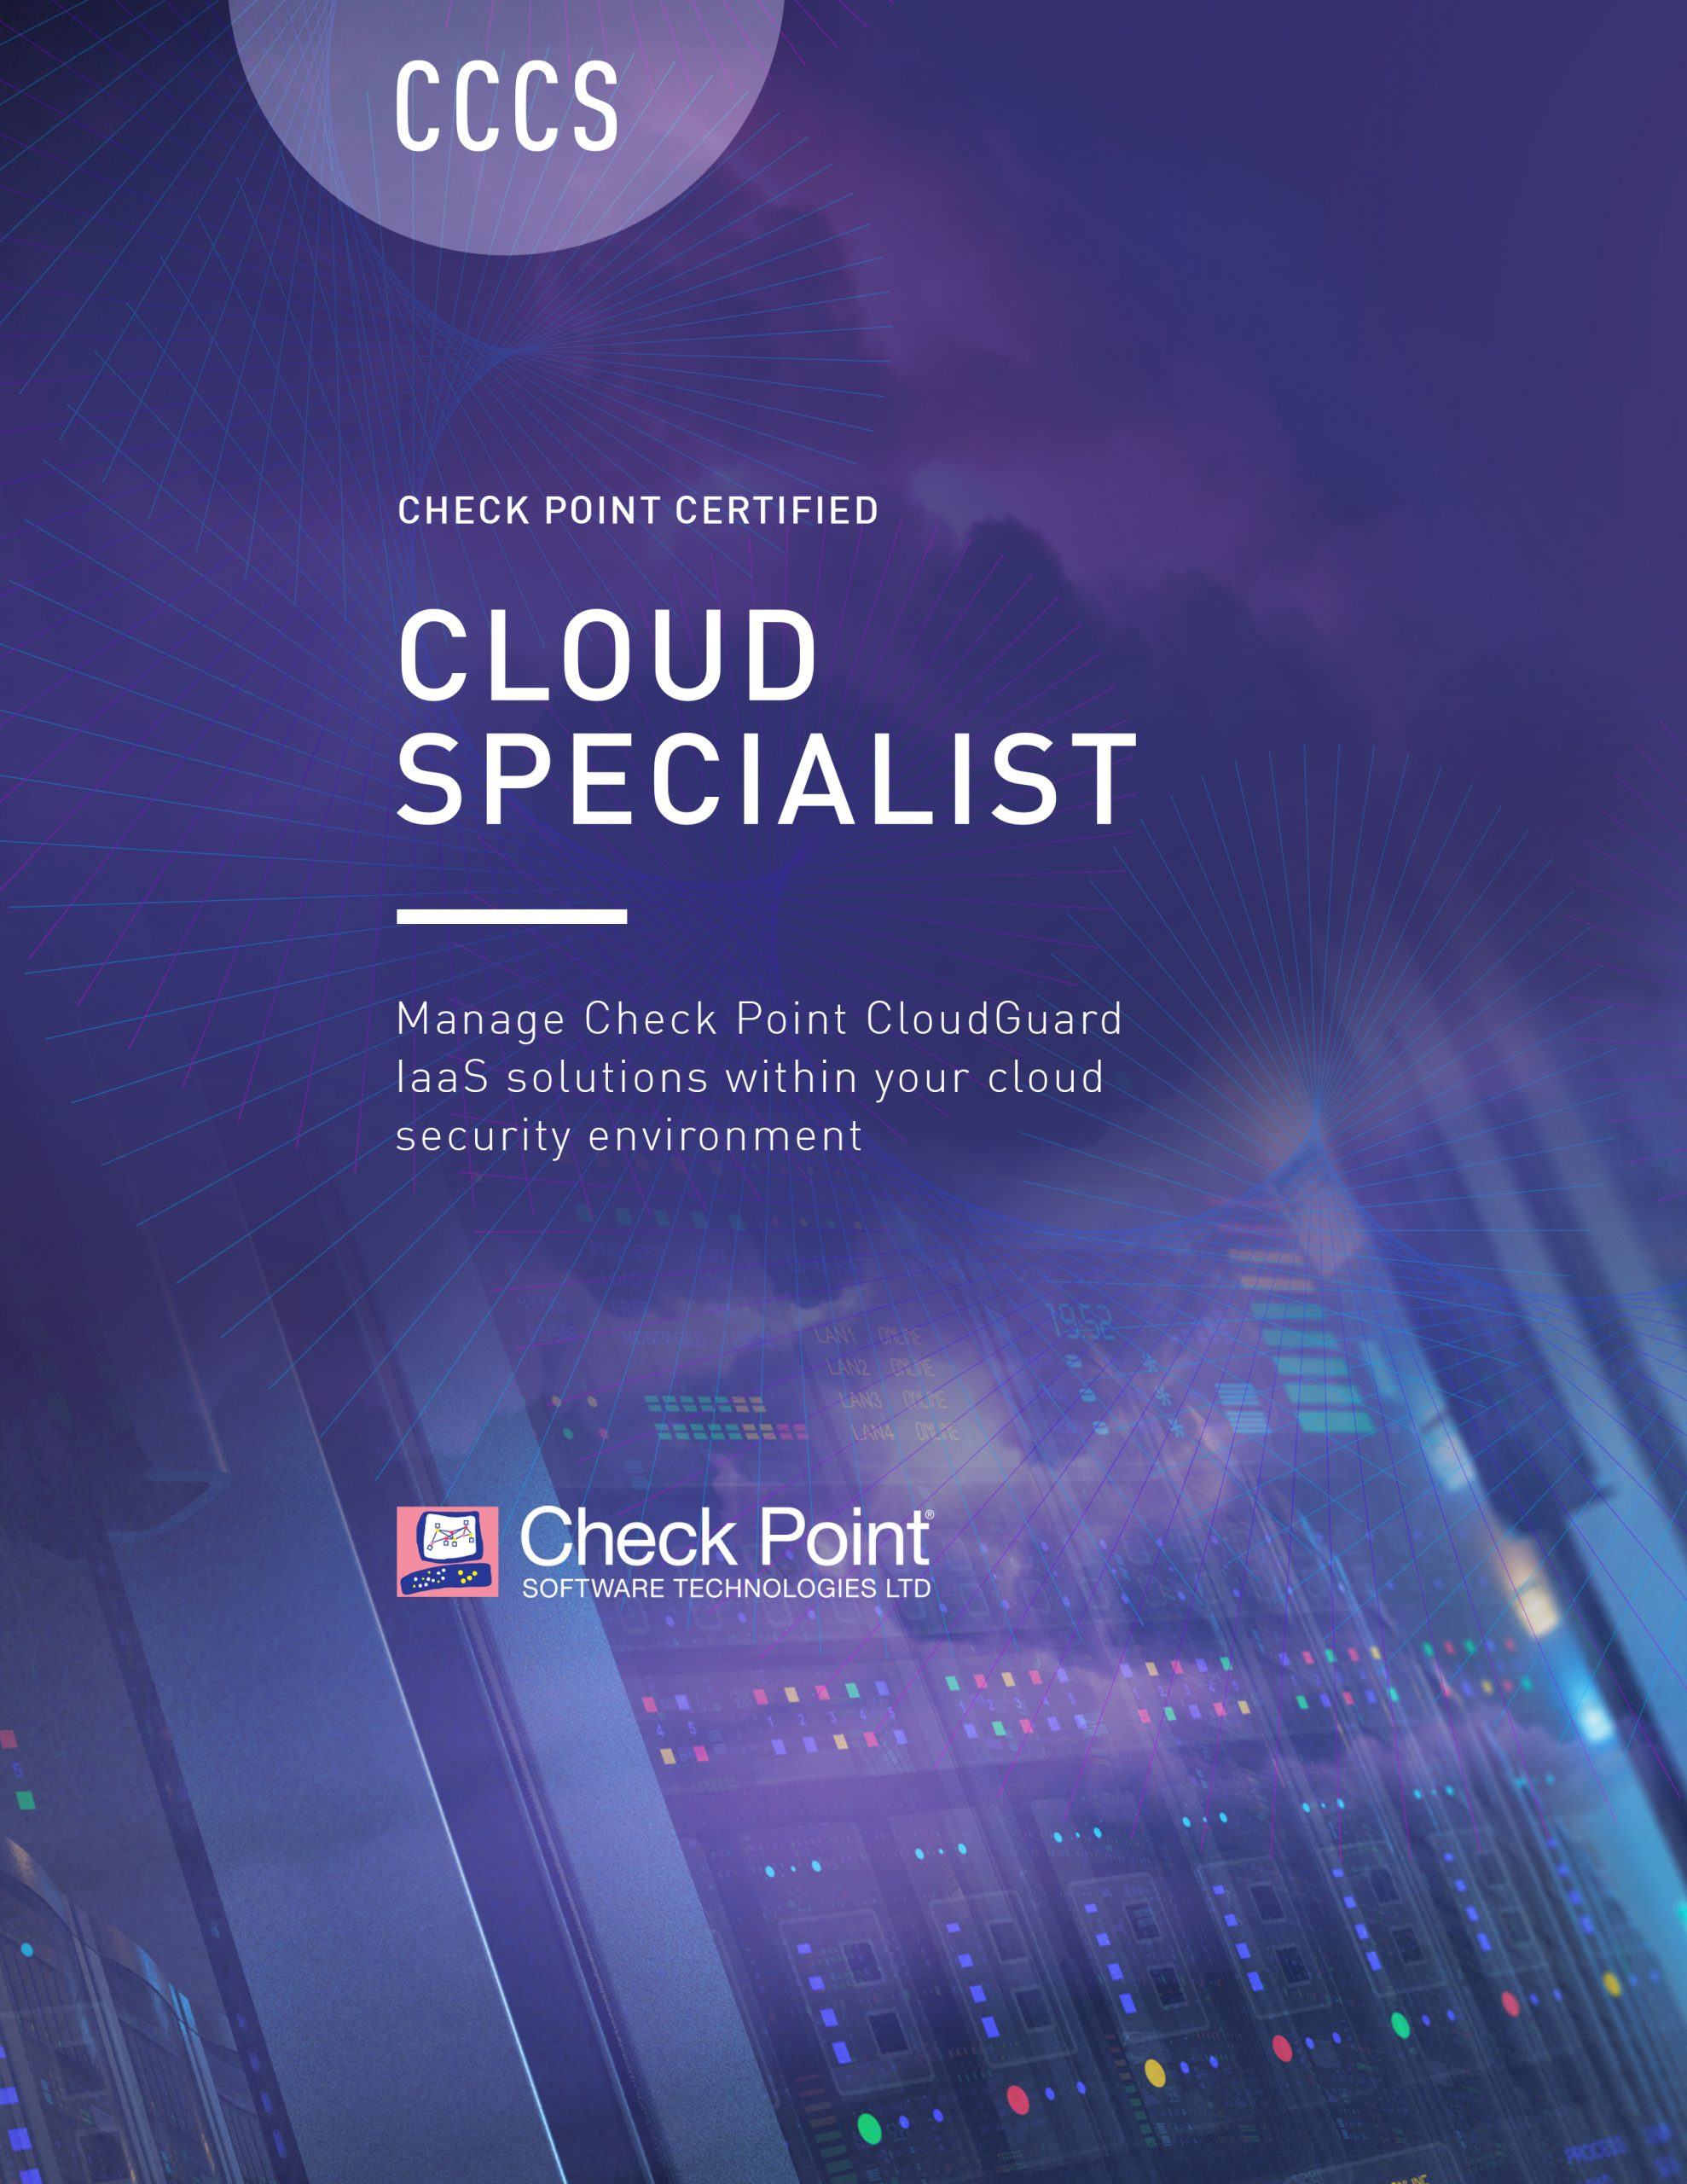 CCCS – Check Point Certified Cloud Specialist (CCCS)